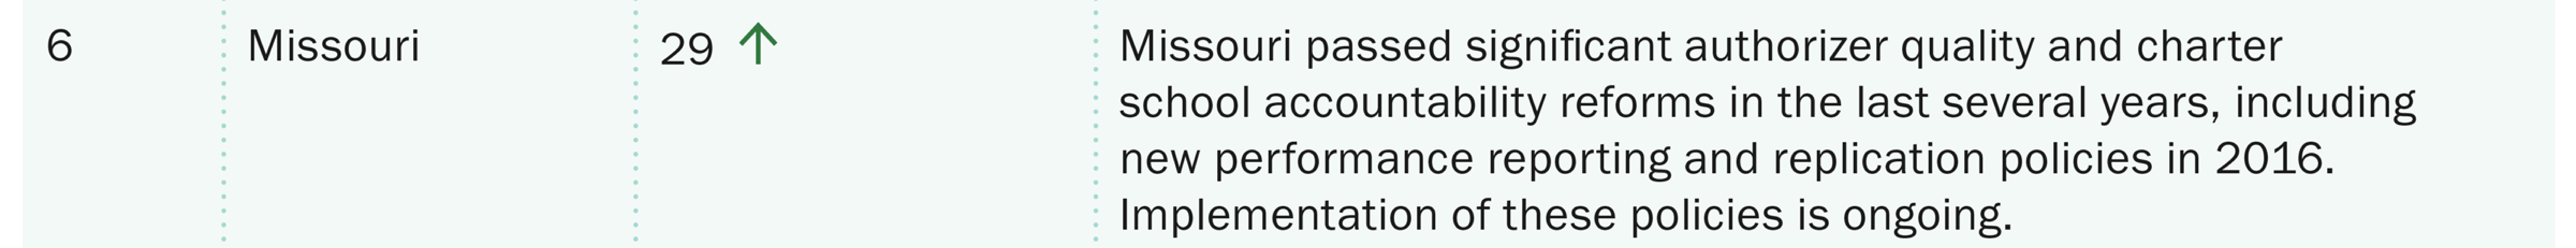 statereport_state-rankings-individual-missouri